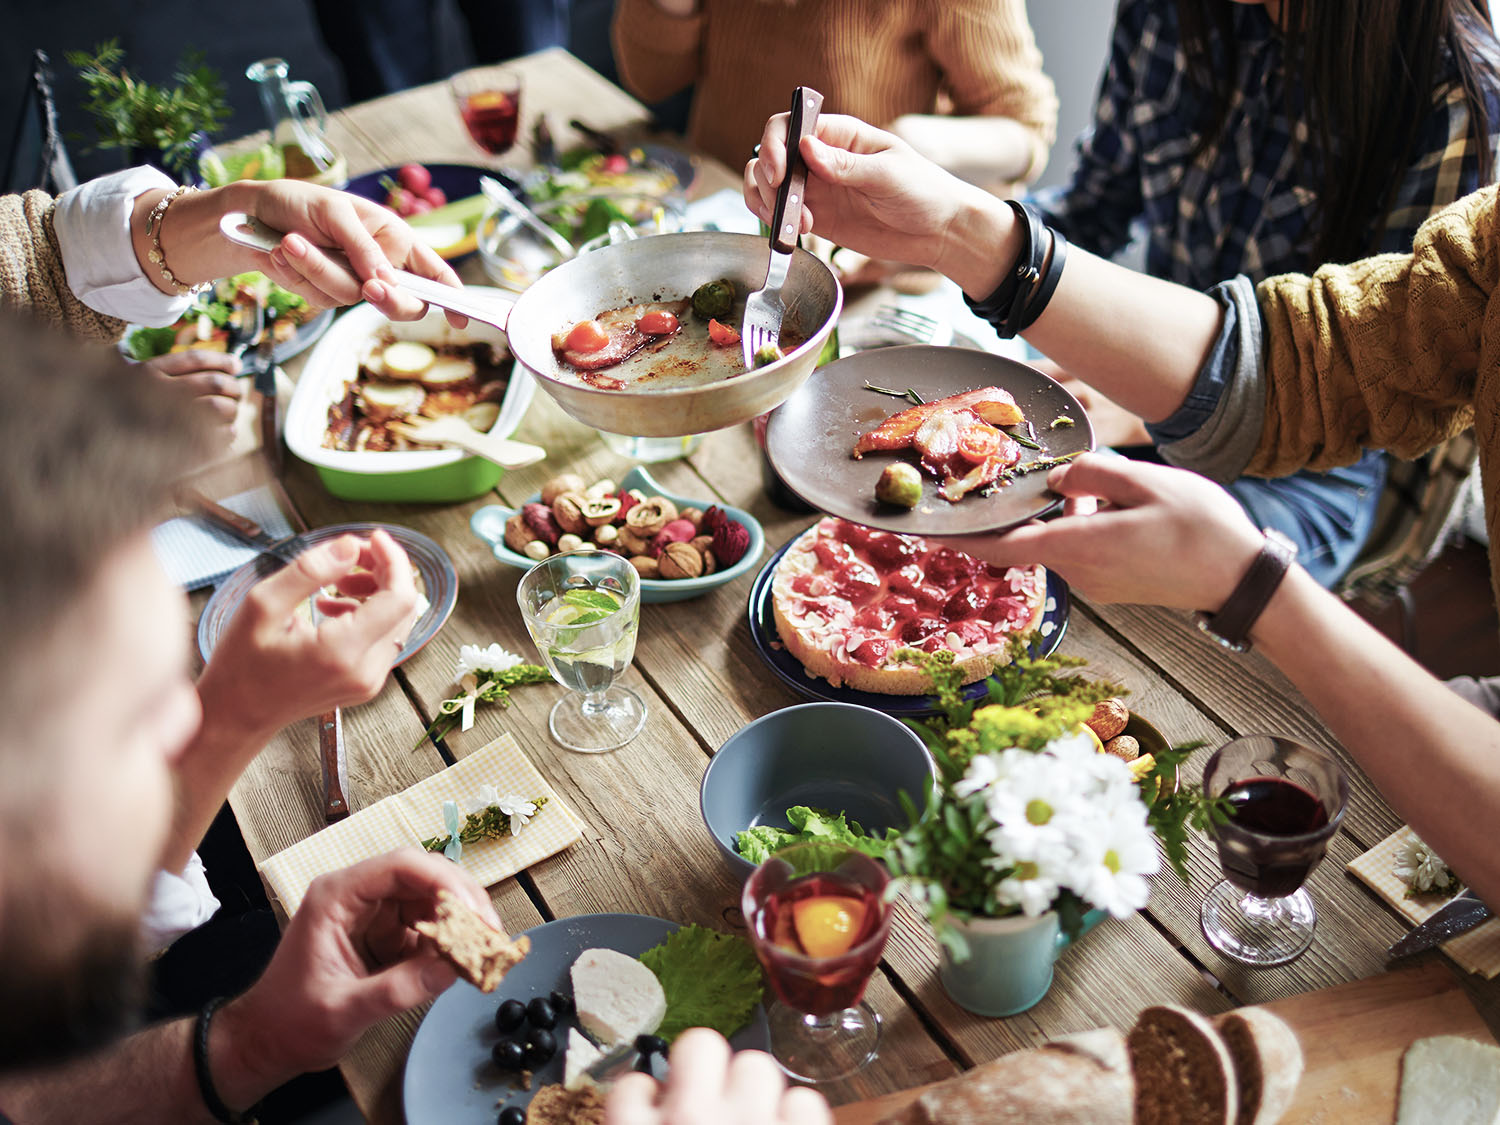 The Importance of Good Nutrition: 5 Fascinating Ways Your Diet Affects Your Overall Wellness